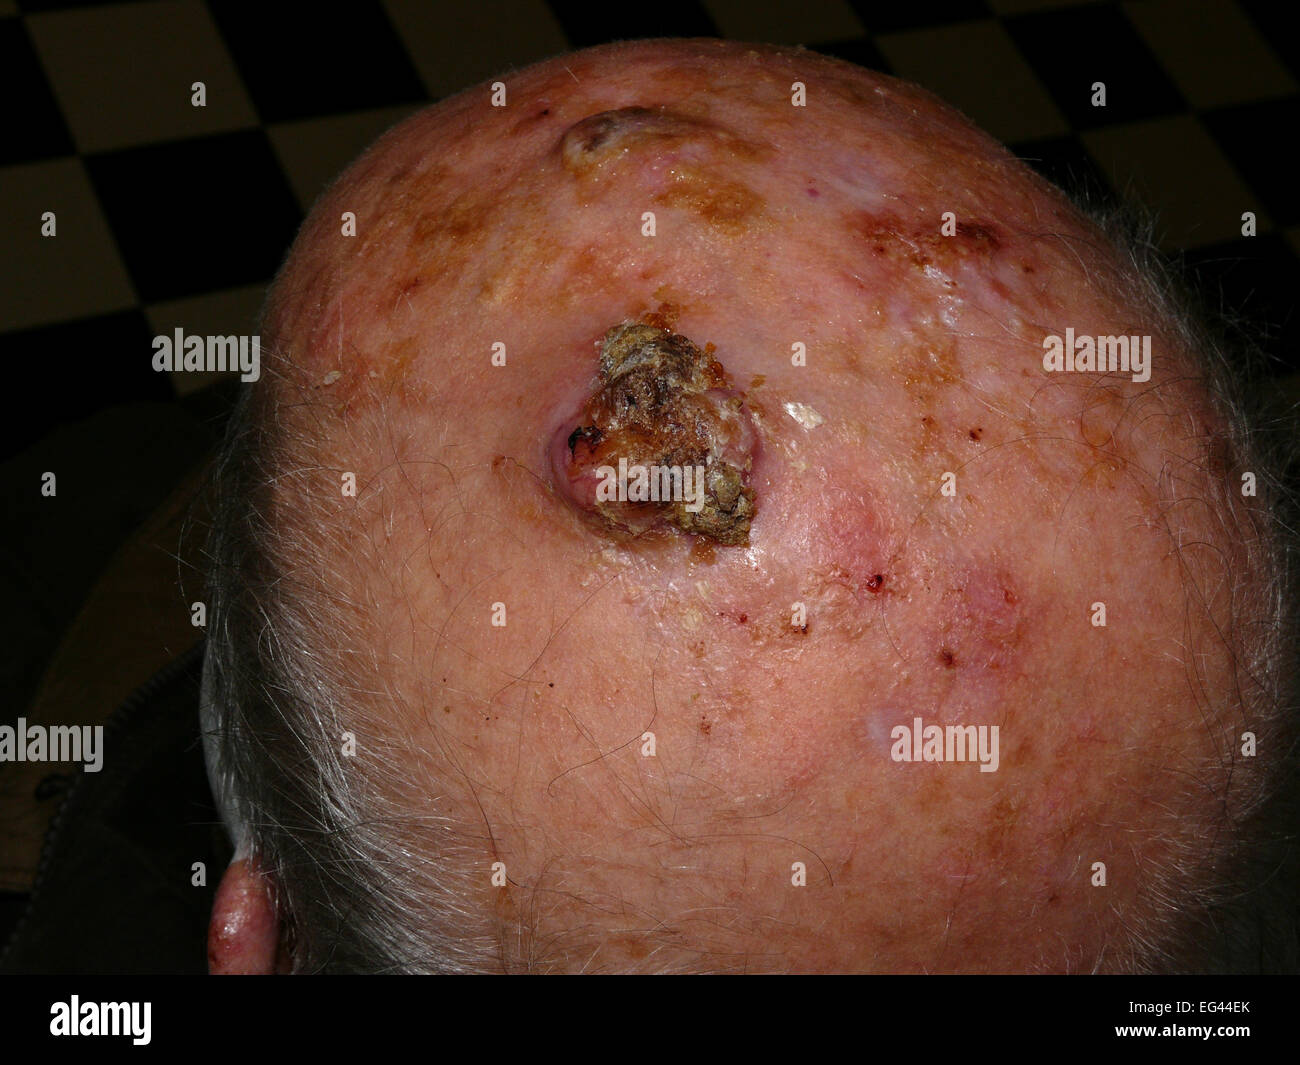 squamouscell carcinoma of the scalp stock photo royalty